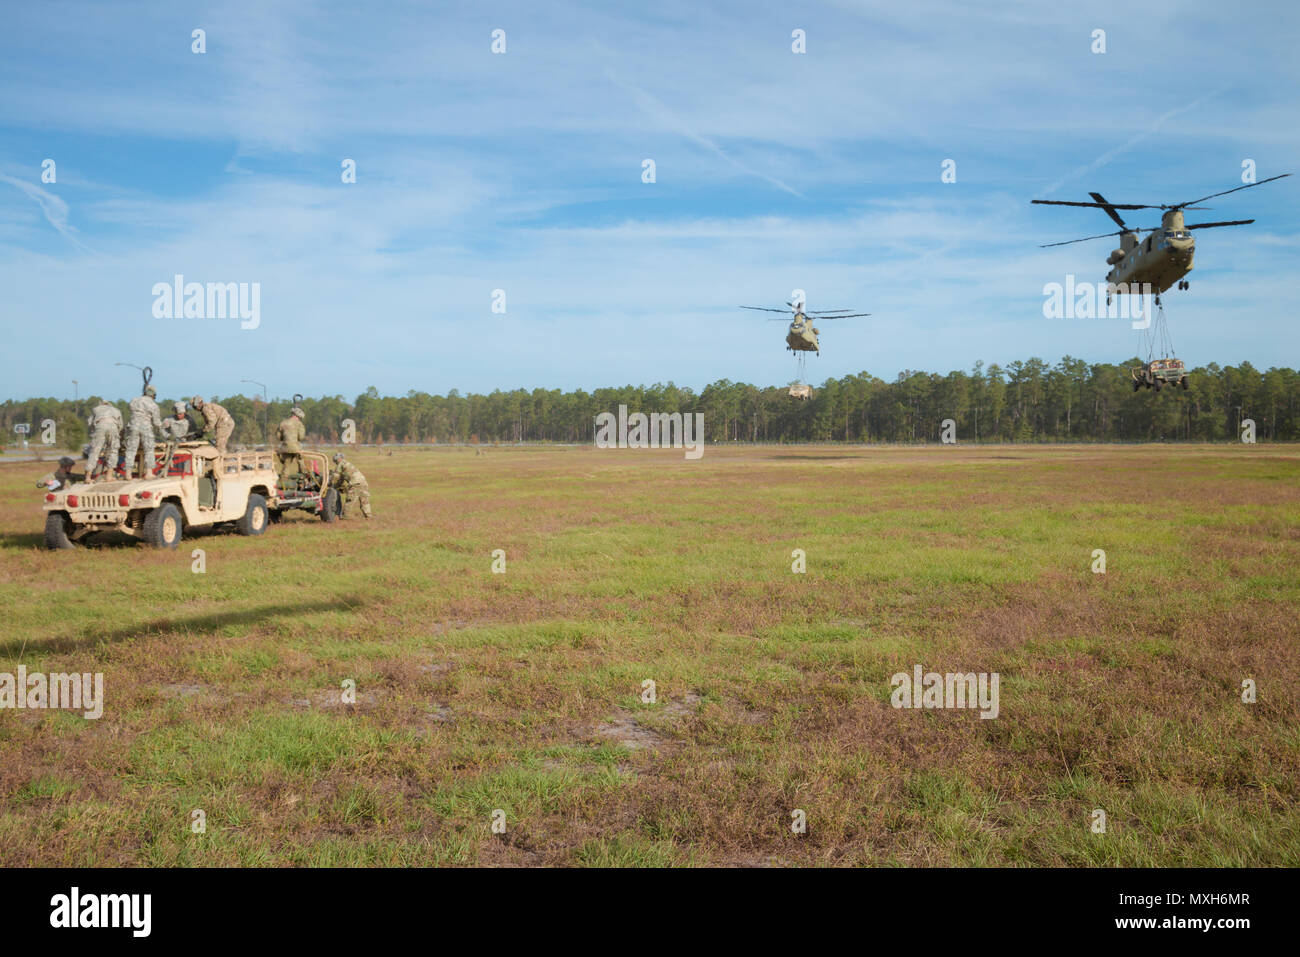 Soldiers assigned to 3rd Division Artillery prepare a Humvee and artillery piece at Fort Stewart for a slingload training mission while two Chinooks transport equipment, Nov. 6, 2016. The soldiers are transporting howitzers to a training area on Fort Stewart in support of the 3rd Division Artillery. (U.S. Army photo by Lt. Col. Brian J. Fickel) - Stock Image